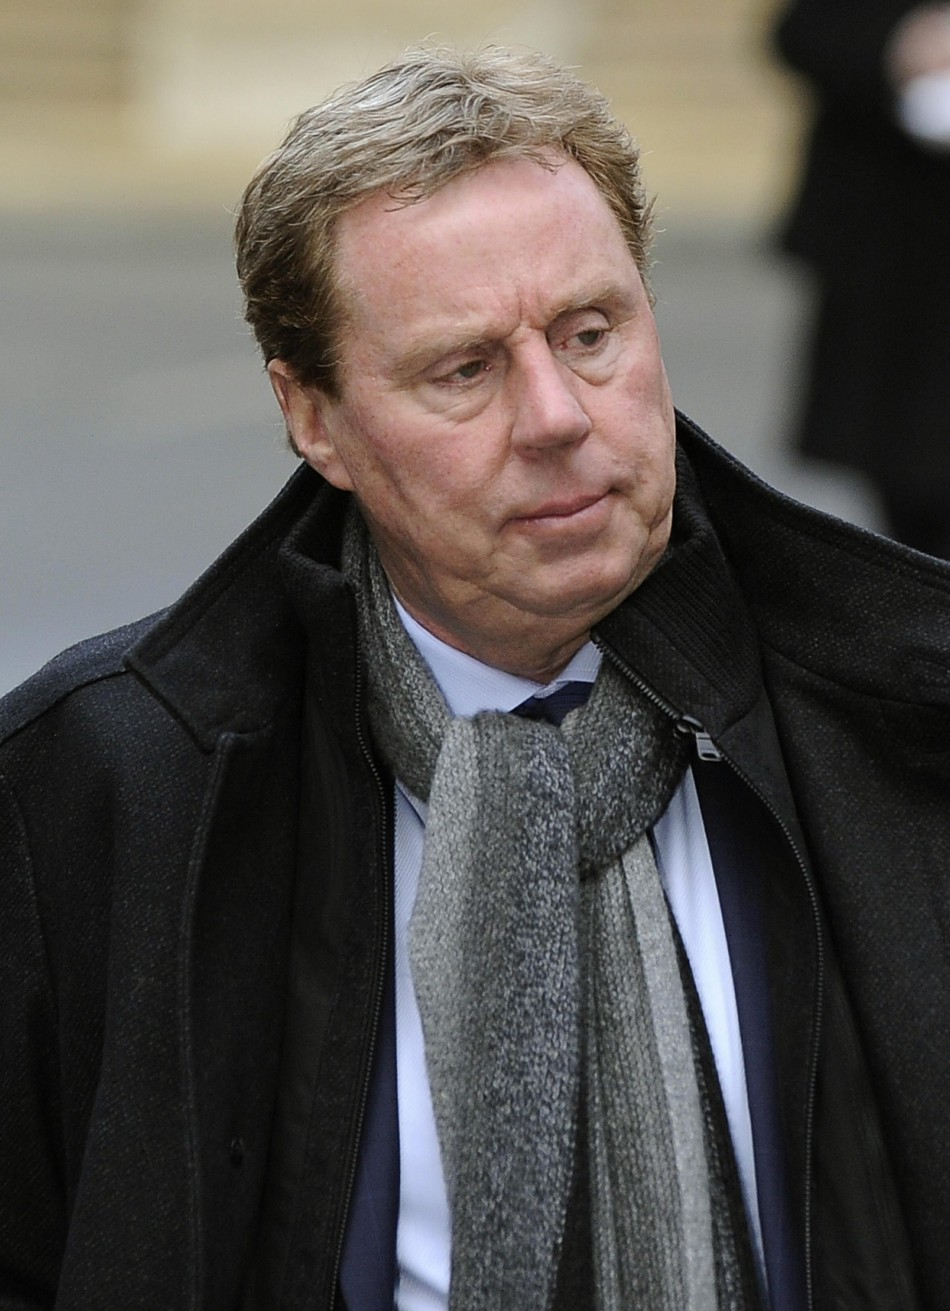 Harry Redknapp arrives at Southwark Crown Court for final day of tax evasion trial